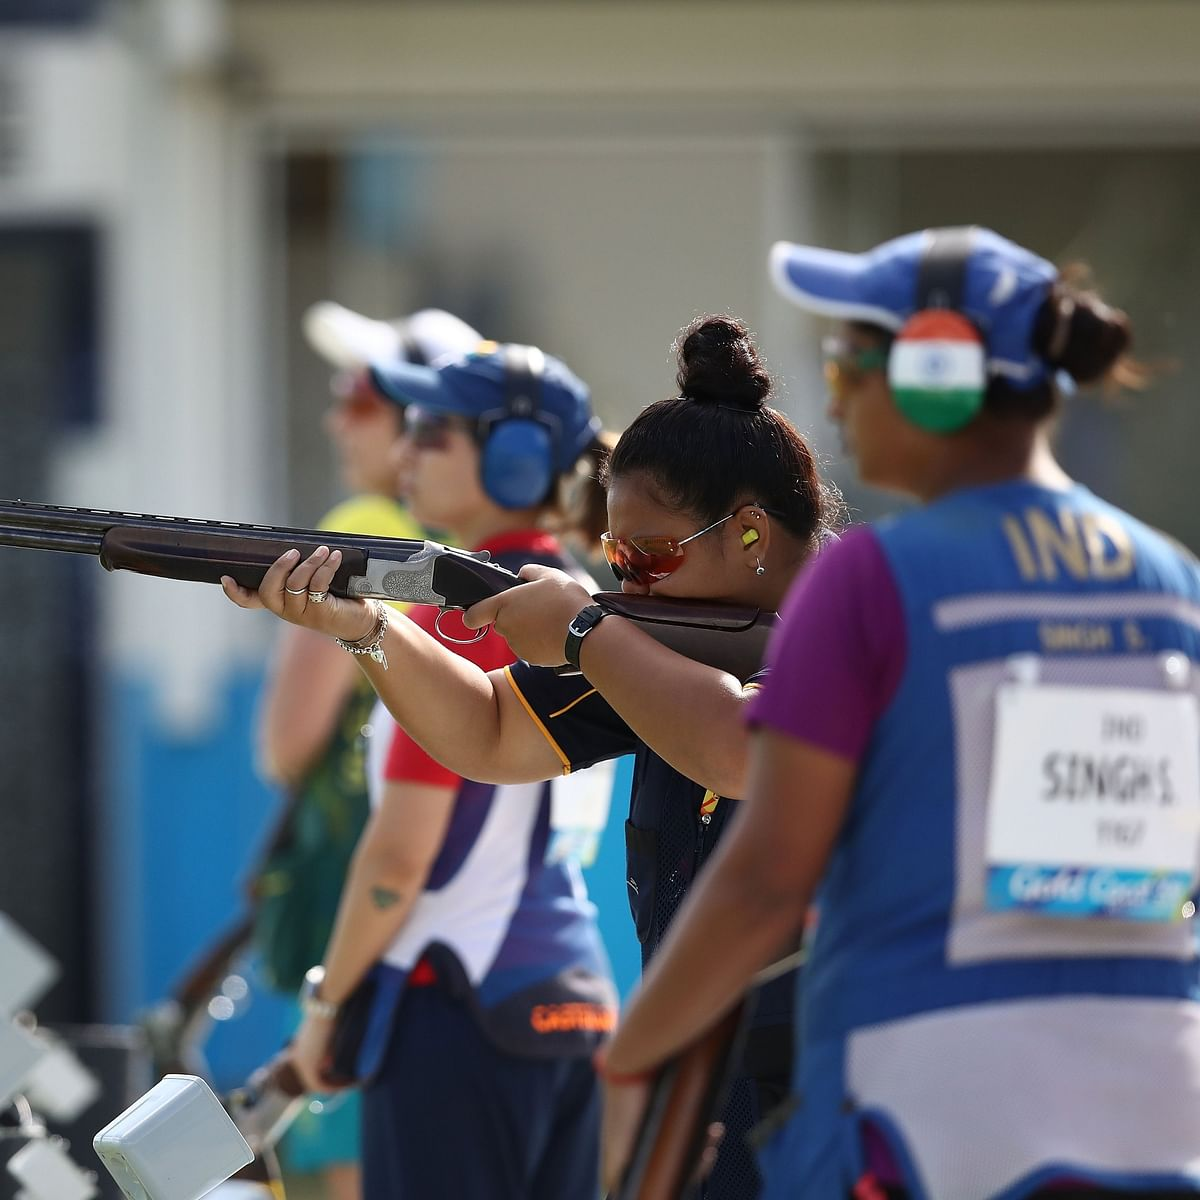 India to turn host for Commonwealth Archery & Shooting Championships in 2022